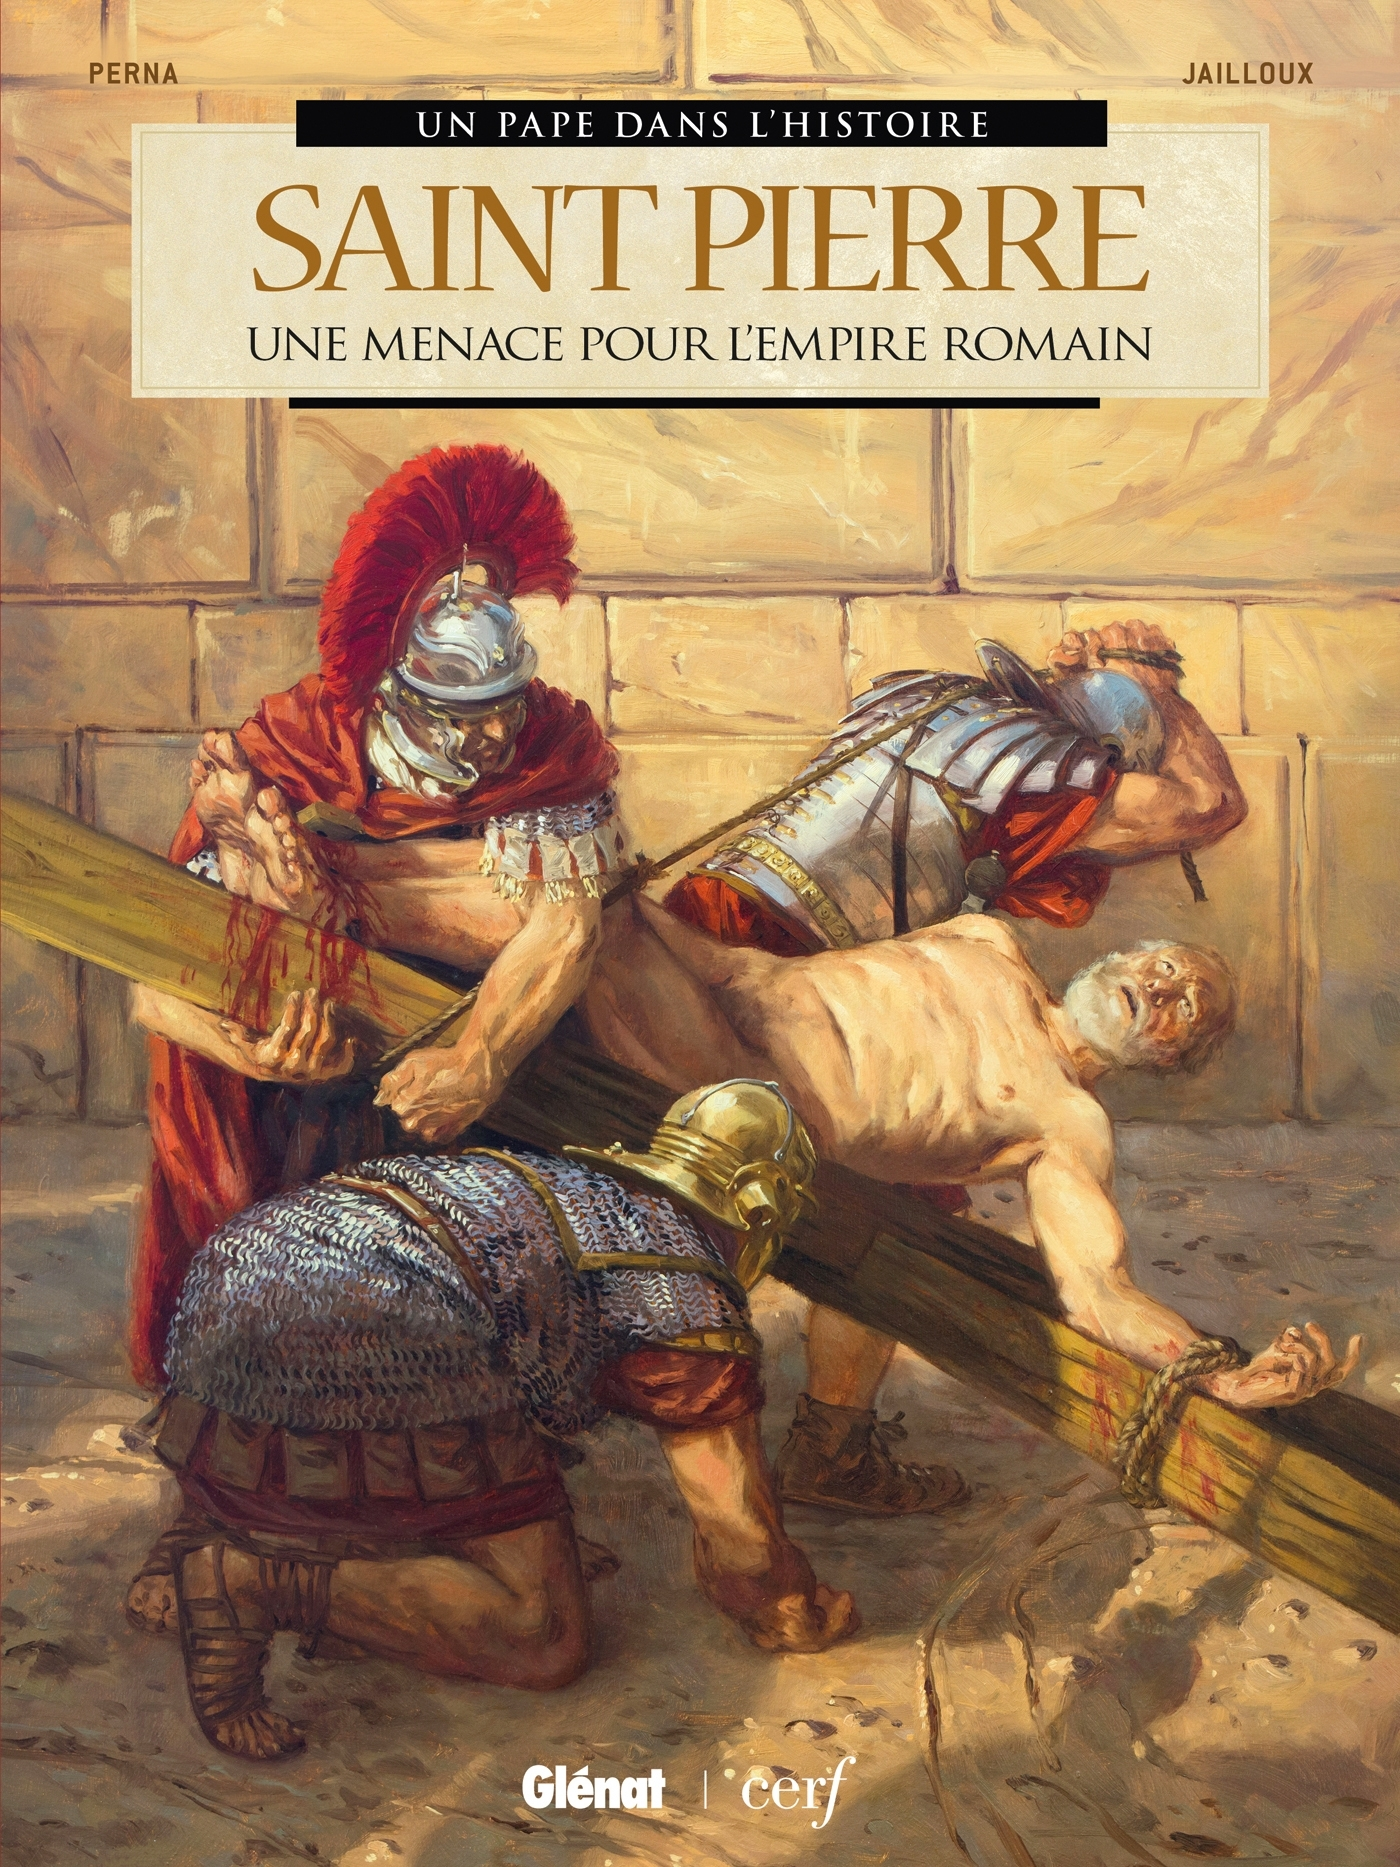 SAINT PIERRE - UNE MENACE POUR L'EMPIRE ROMAIN